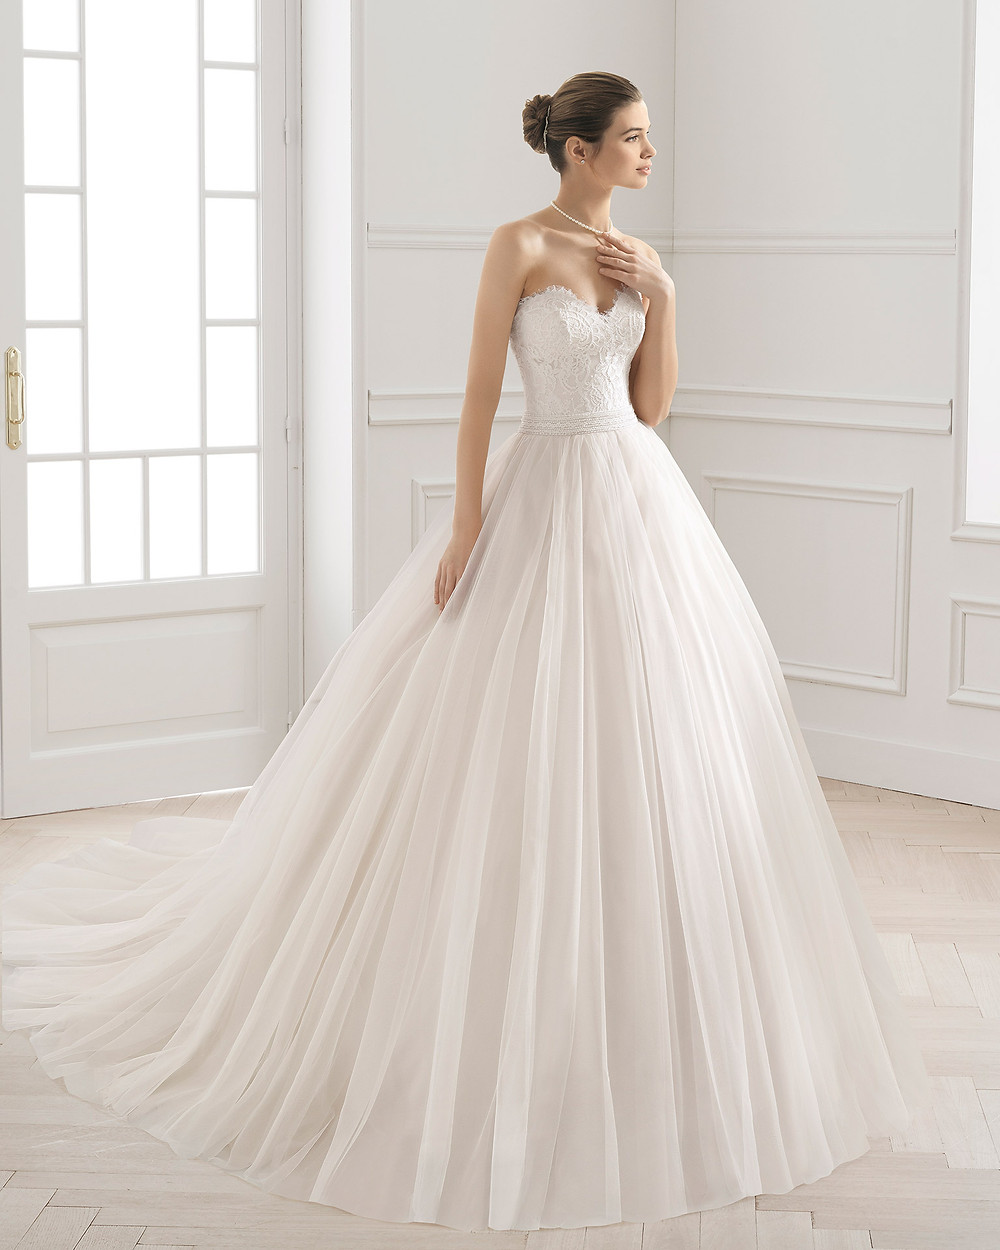 An Aire Barcelona 2020 strapless romantic lace and tulle ball gown wedding dress